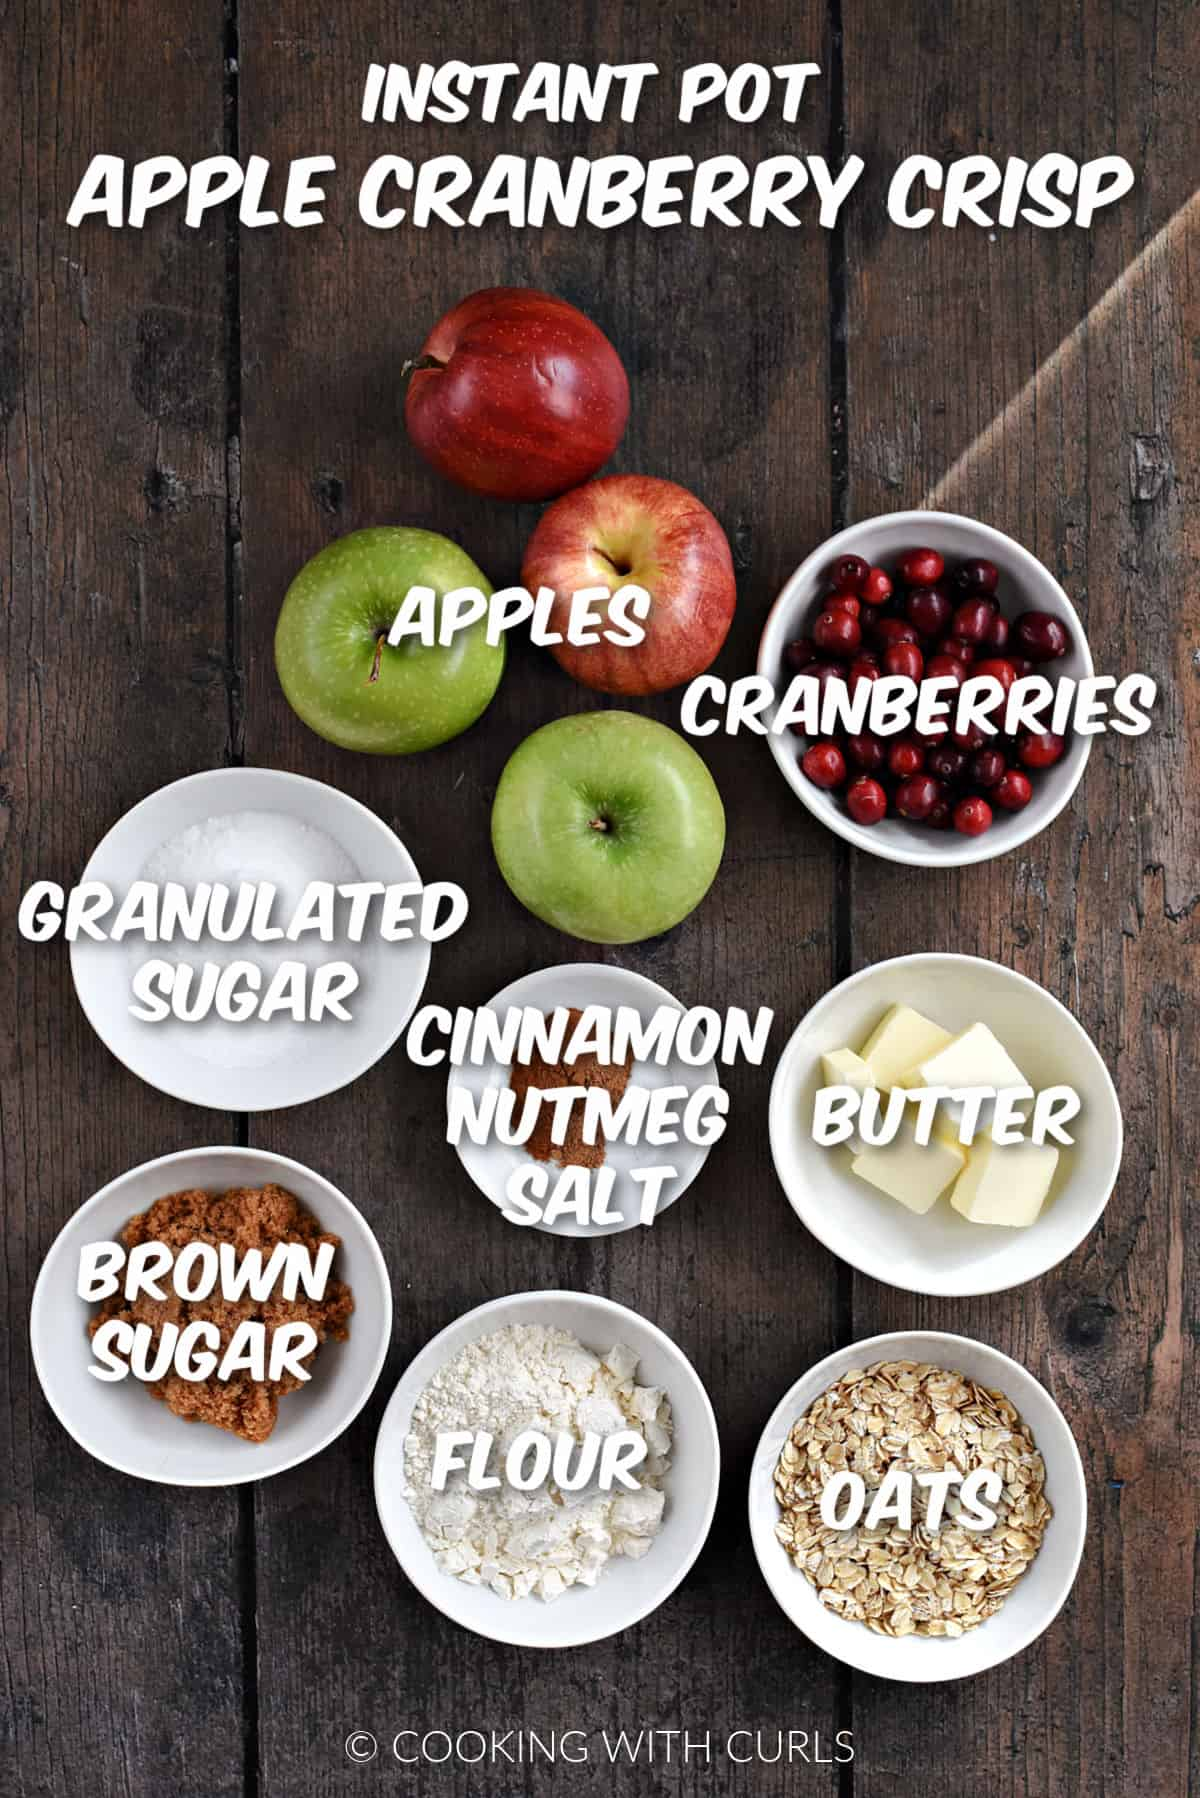 Four apples, cranberries, sugars, butter, flour, oats and seasonings in white bowls.